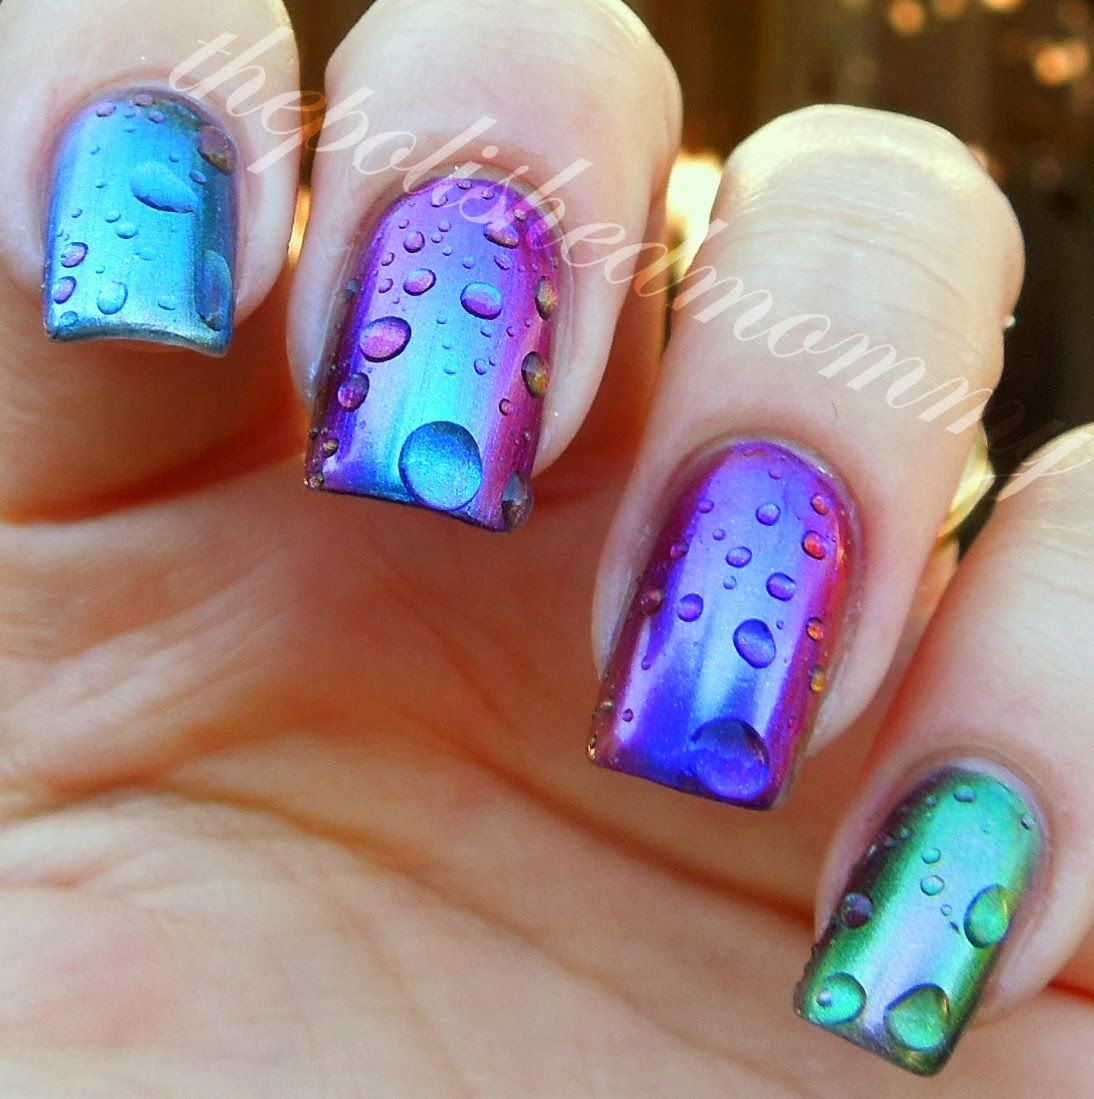 Beauty news nail shapes for fall 2015 manicure pros talk art designs ...